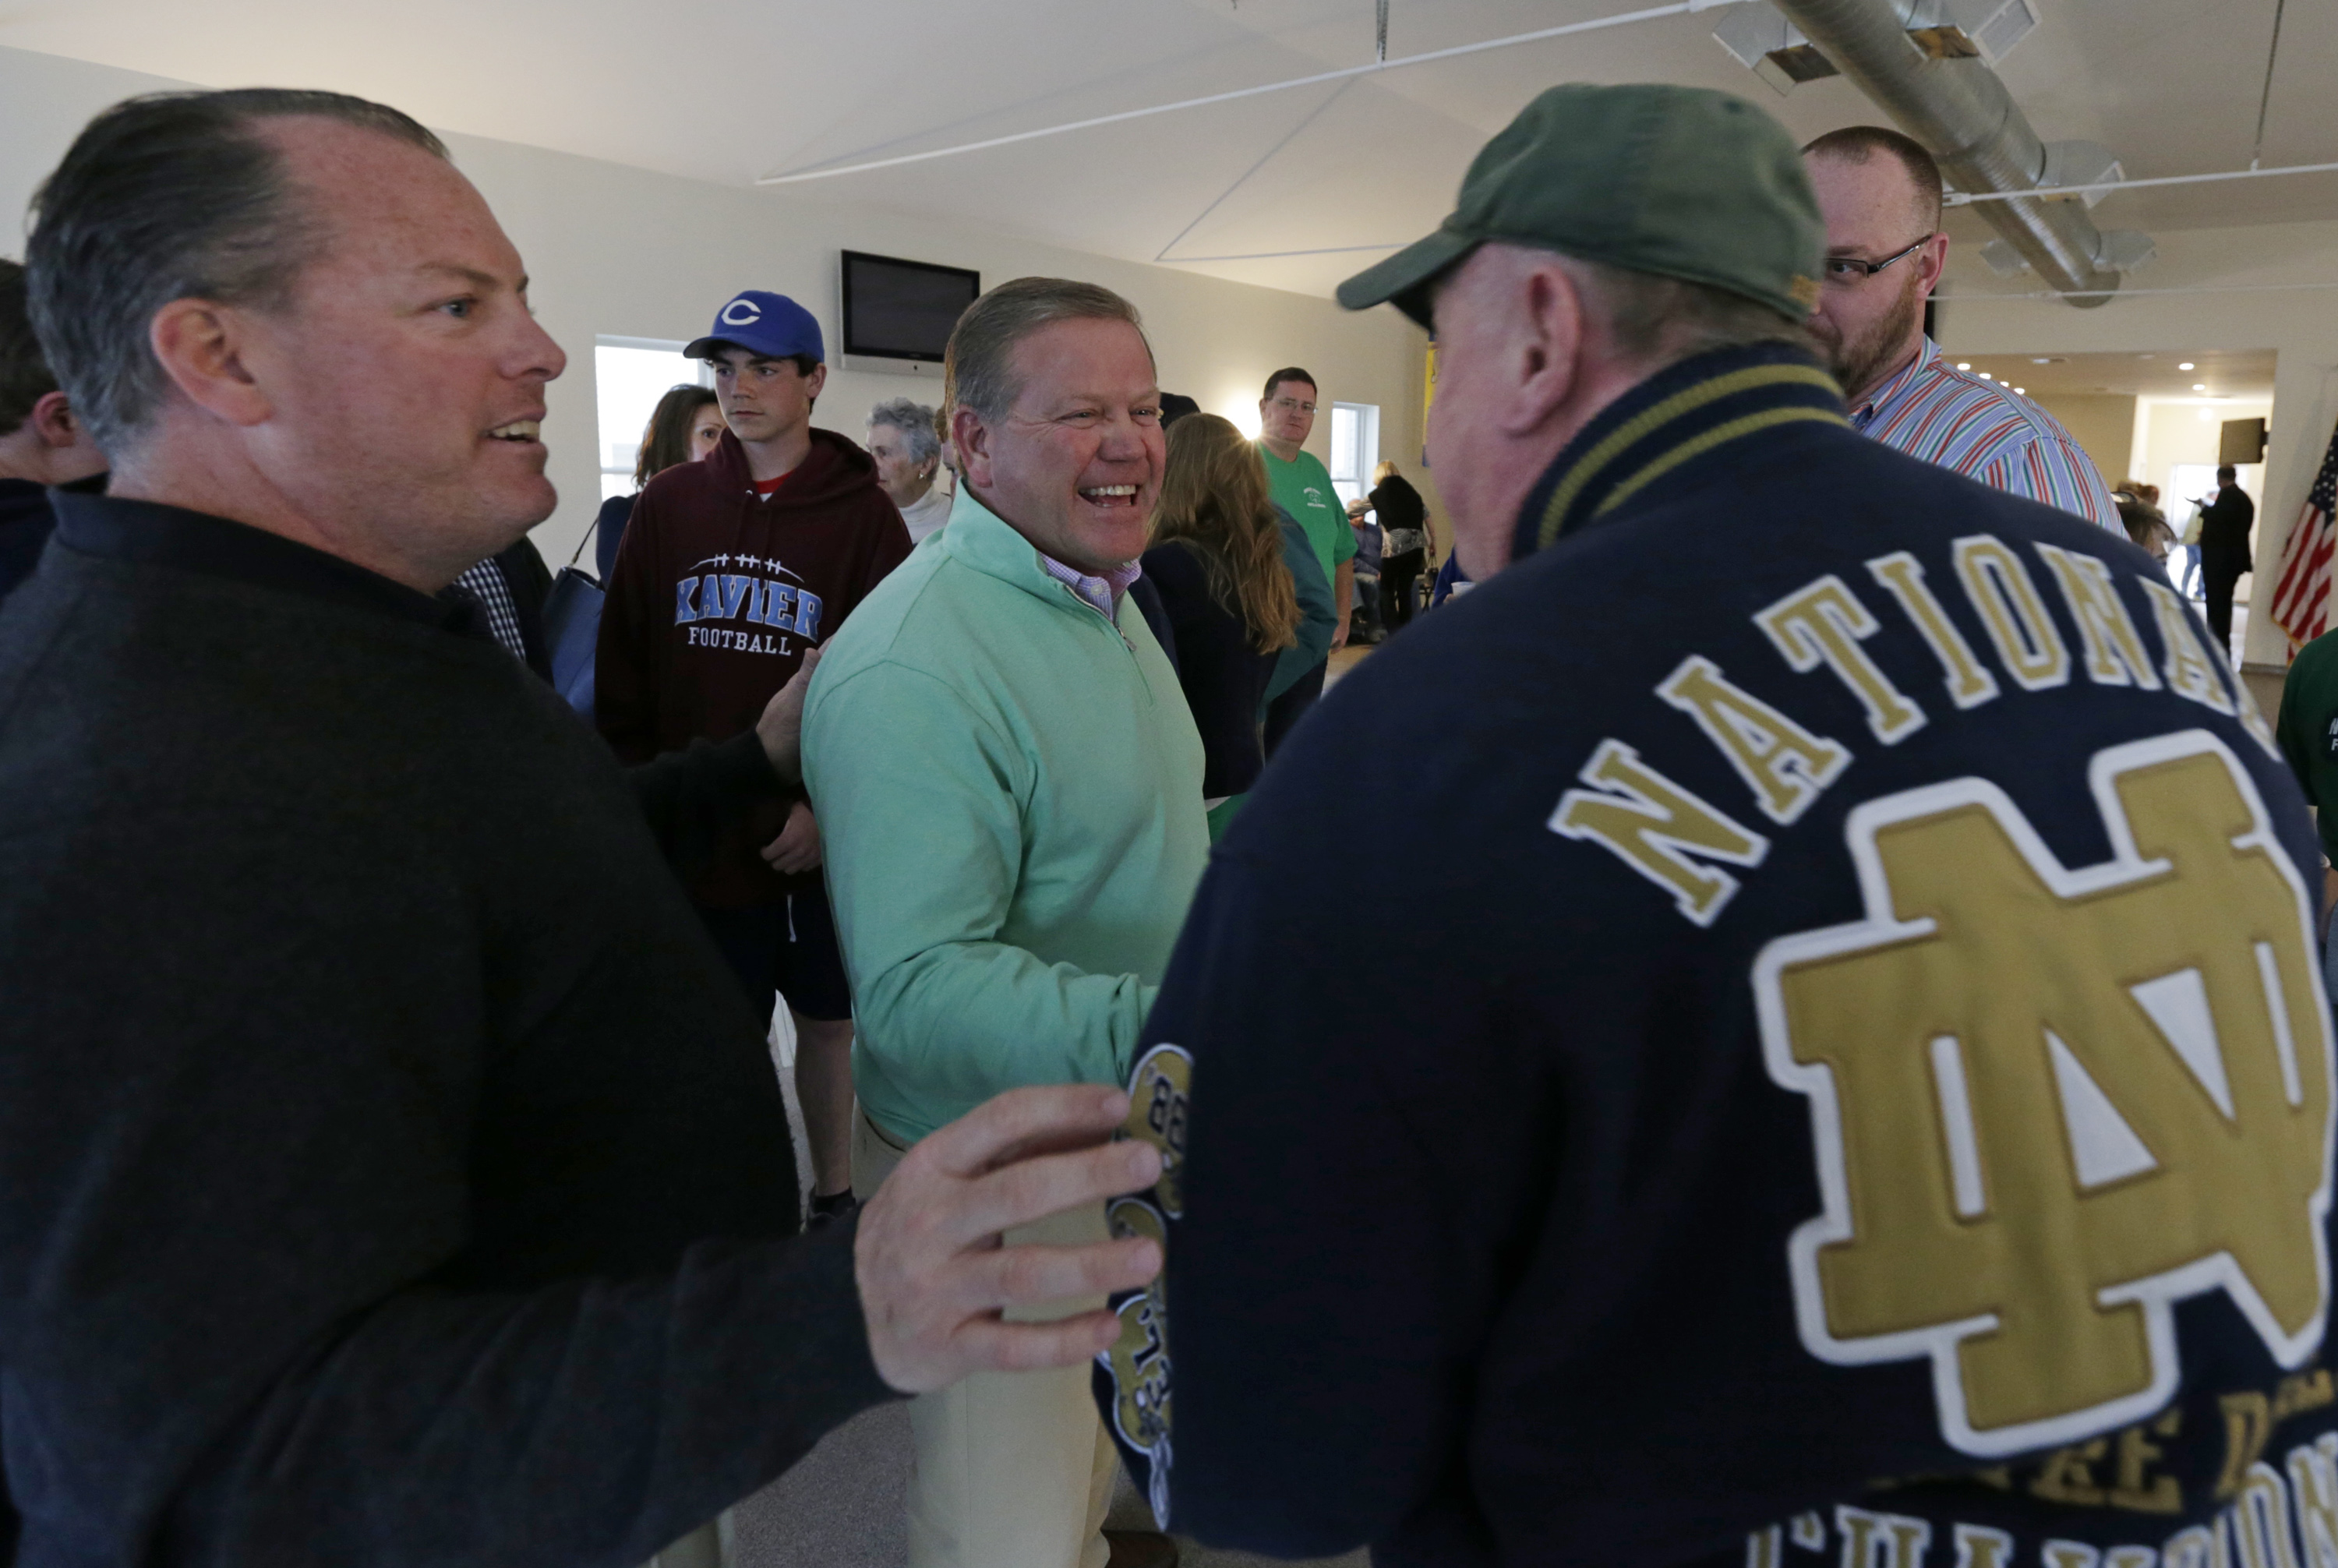 Coach Kelly (center) shakes hands with Pat Mullee (center right) in the new Catholic Club after the ribbon cutting ceremony on April 22. Photo: Peter Foley.